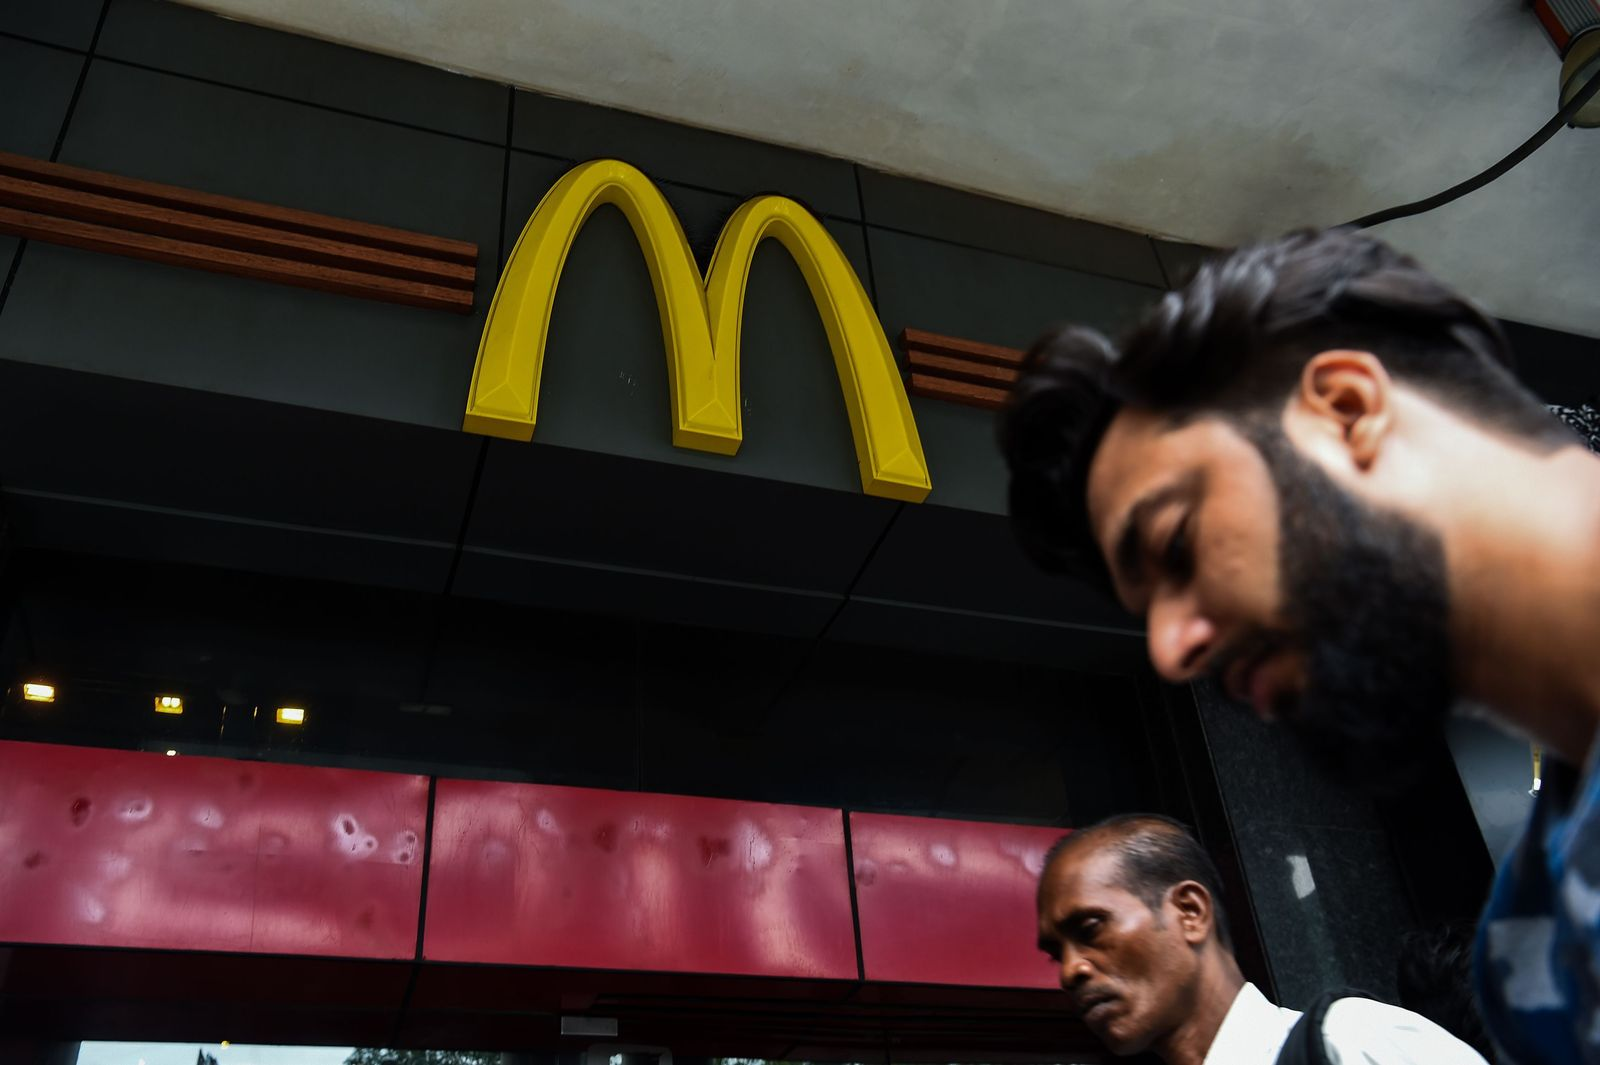 FILES-INDIA-US-MCDONALDS-RESTAURANTS